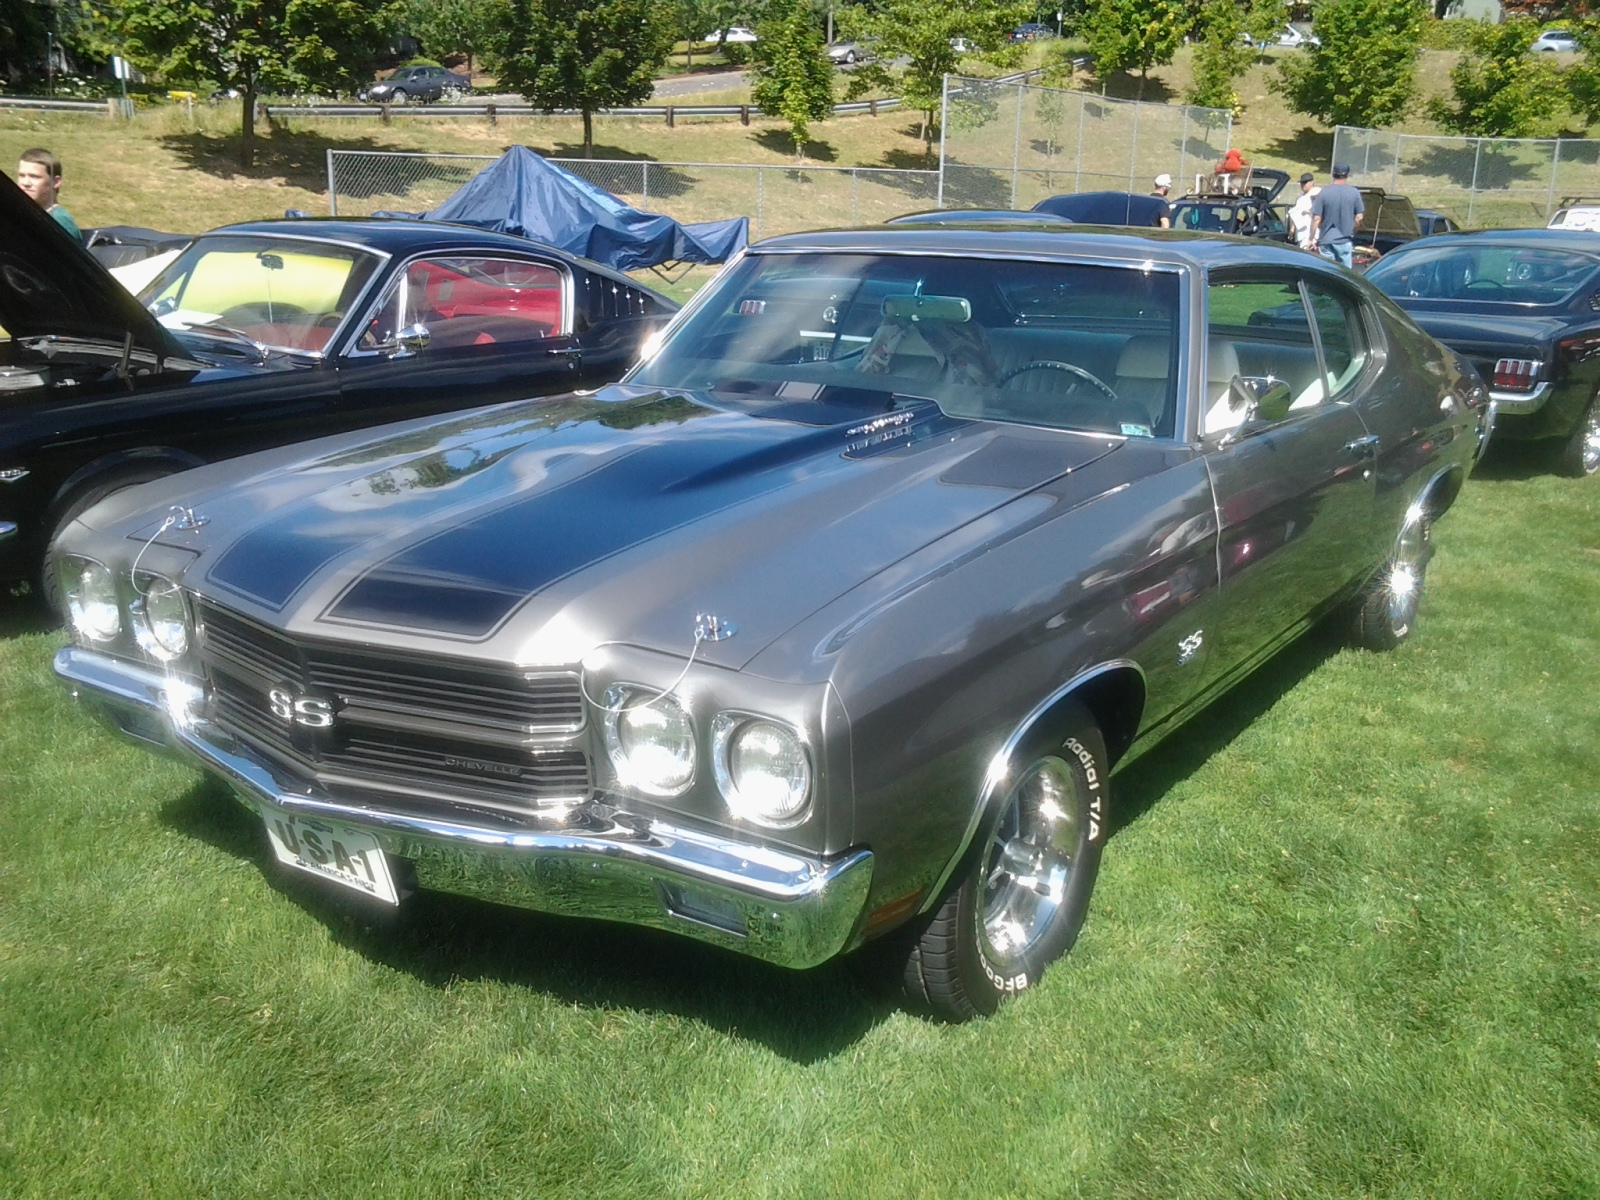 What Makes a Car Show Interesting? | Vintage and Classic Car Blog